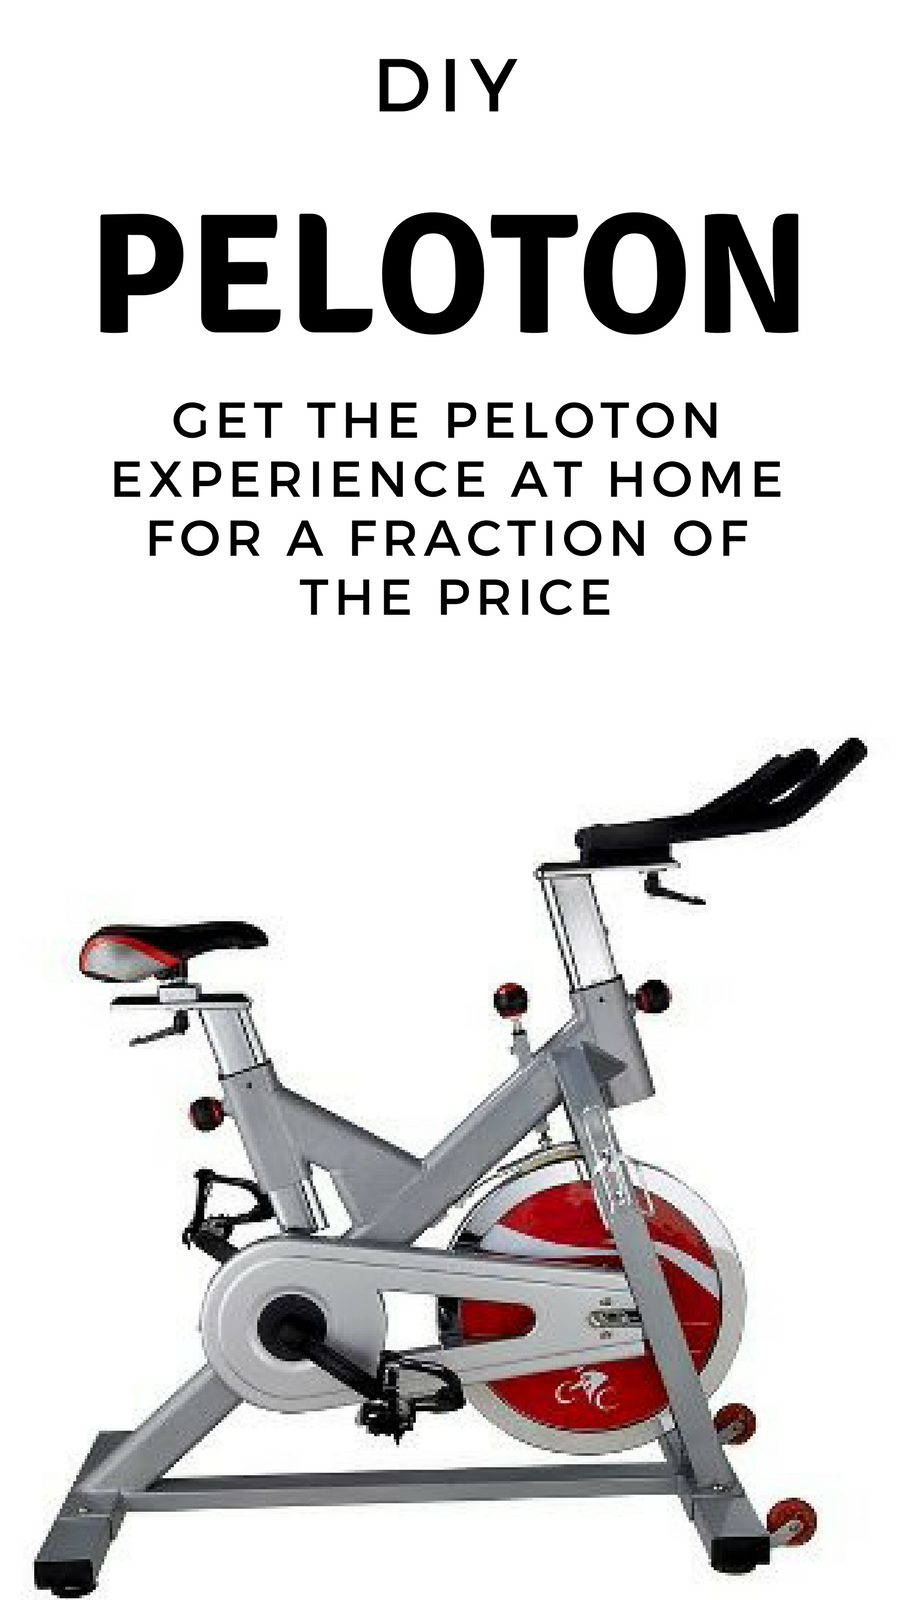 This Is A Great Affordable Bike If You Want To Get The Experience